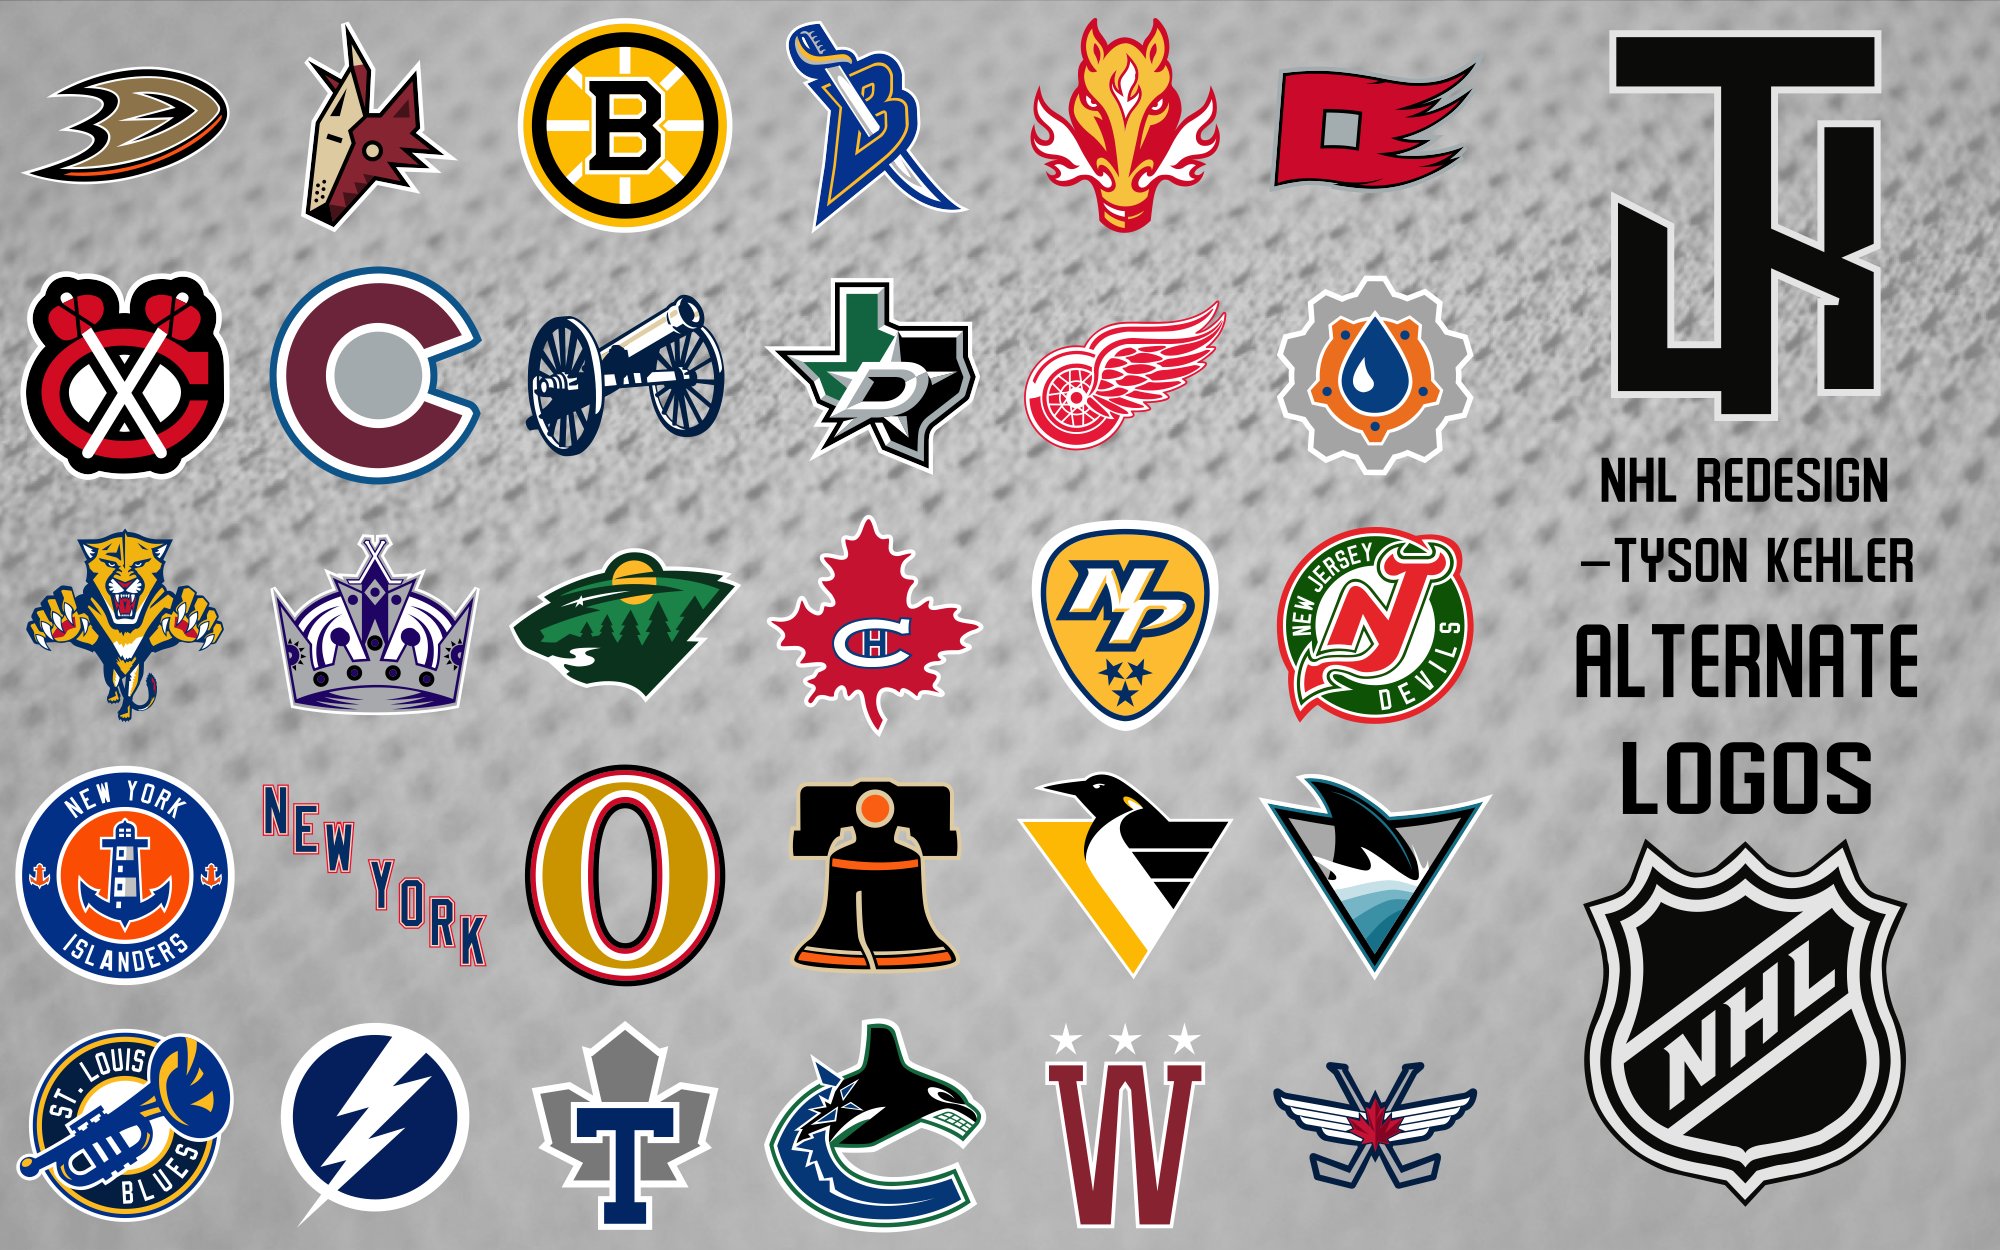 Hockey Logos Pin By A J Surprenant On Hockey Nhl Logos Hockey Hockey Logos